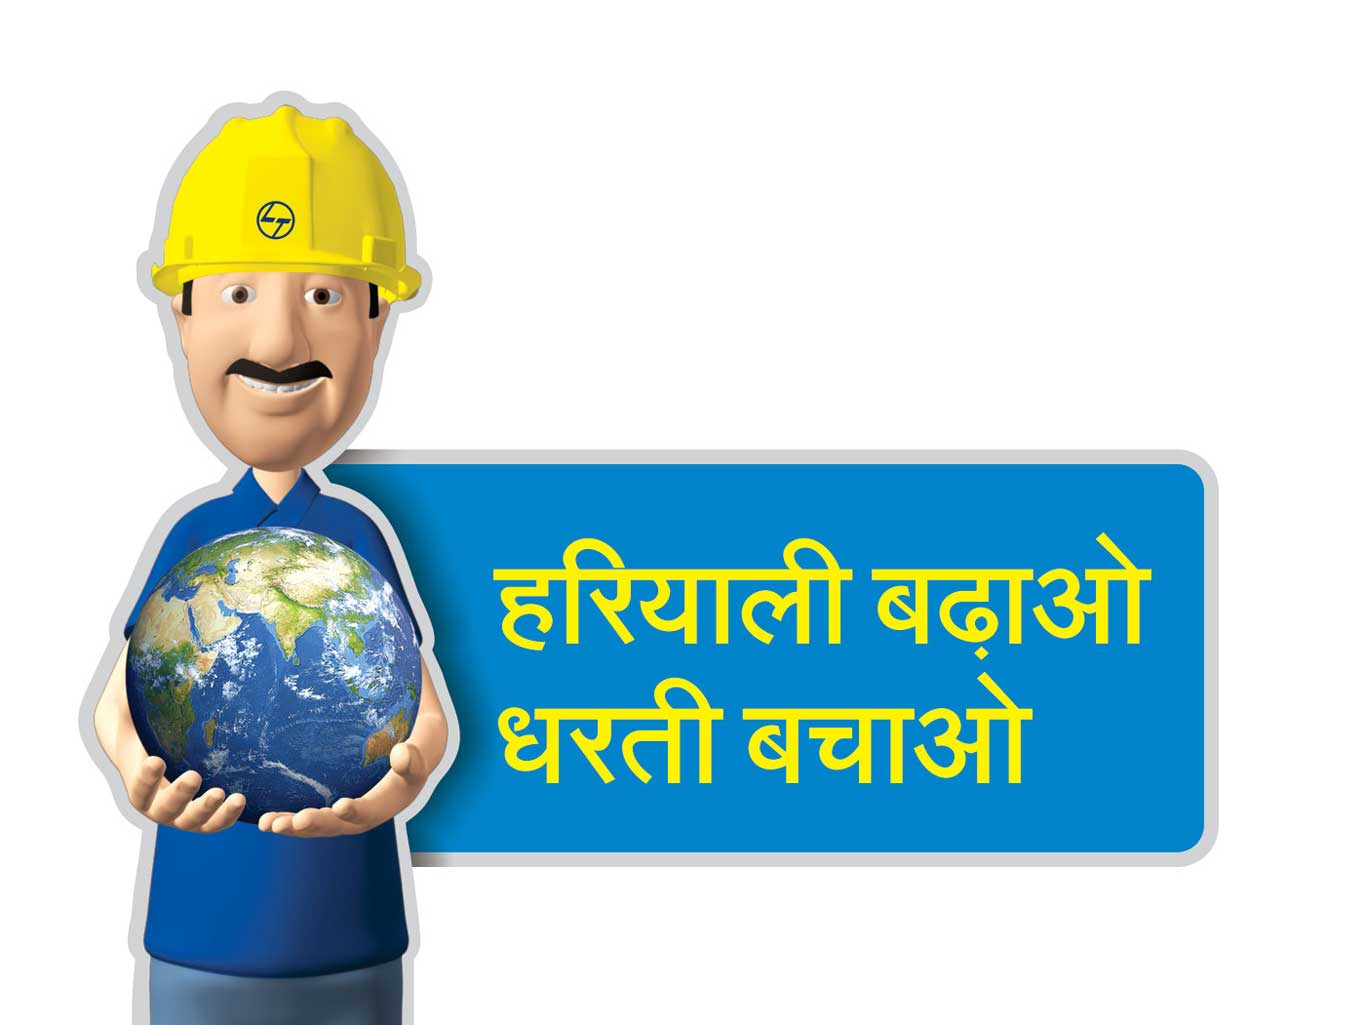 Larsen & Toubro, Pithampur- Venue branding, safety awareness campaign, 3D Character Development